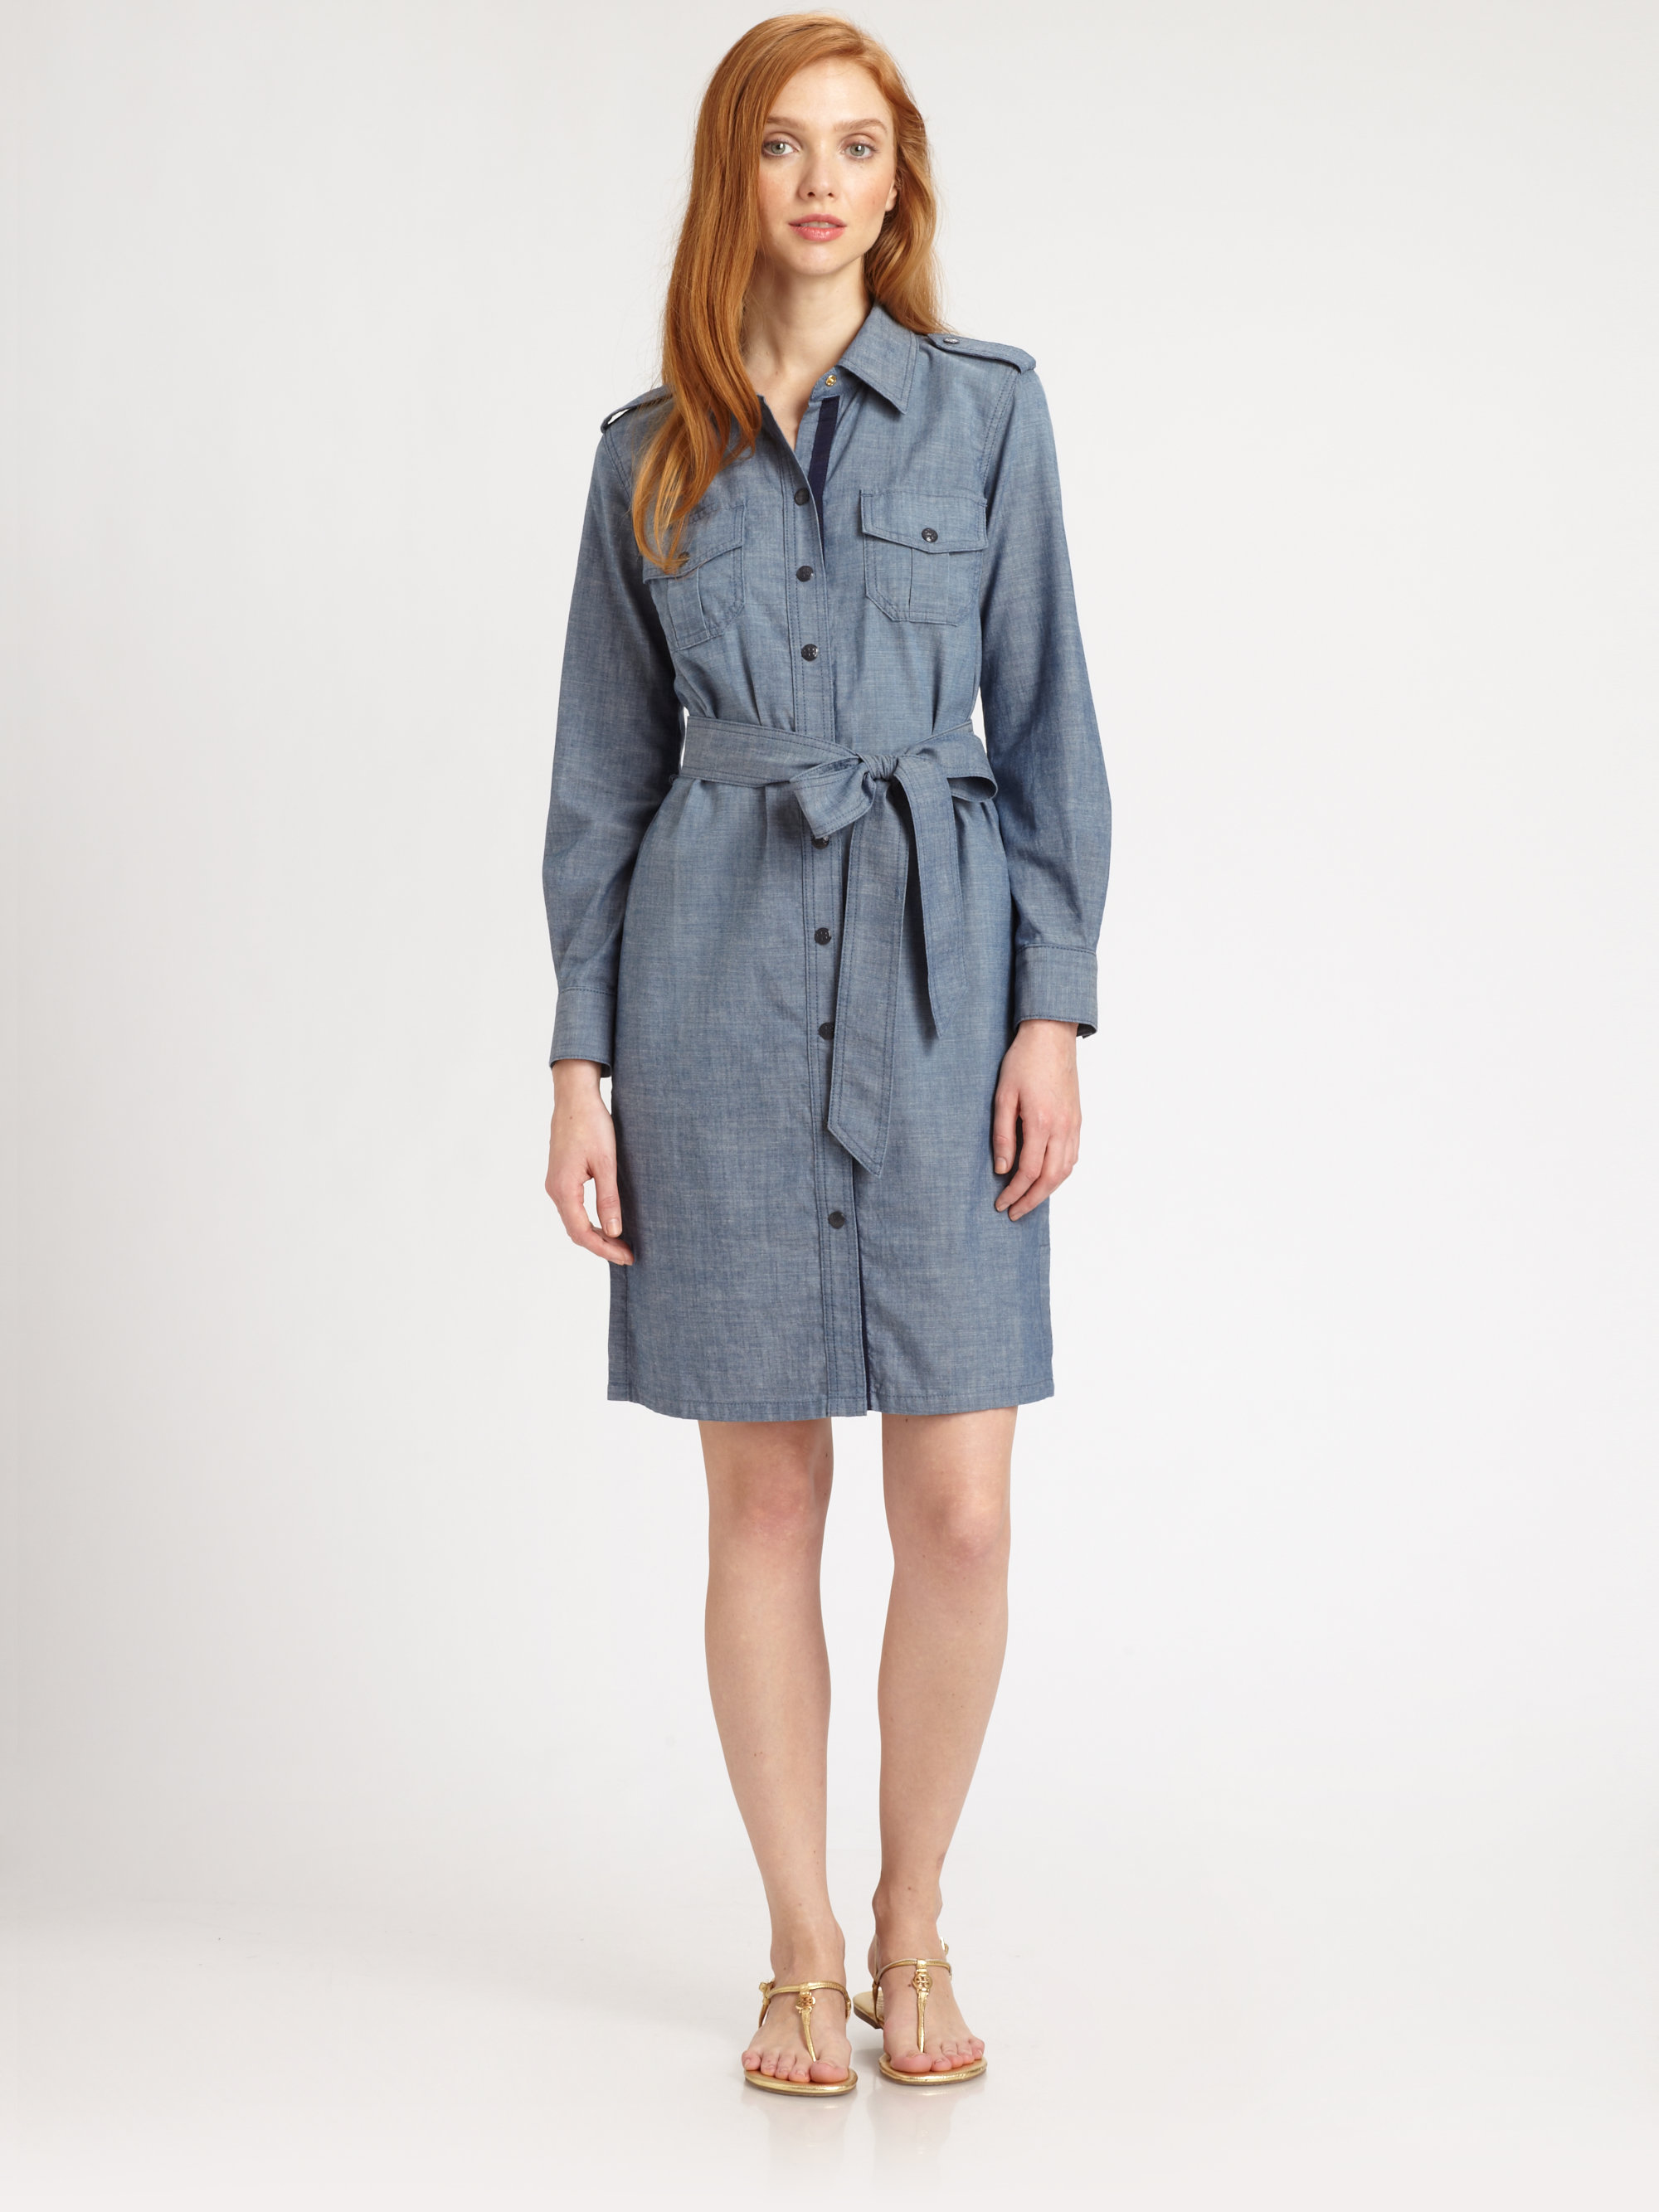 Tory Burch Brigitte Cotton Chambray Shirtdress In Blue Lyst